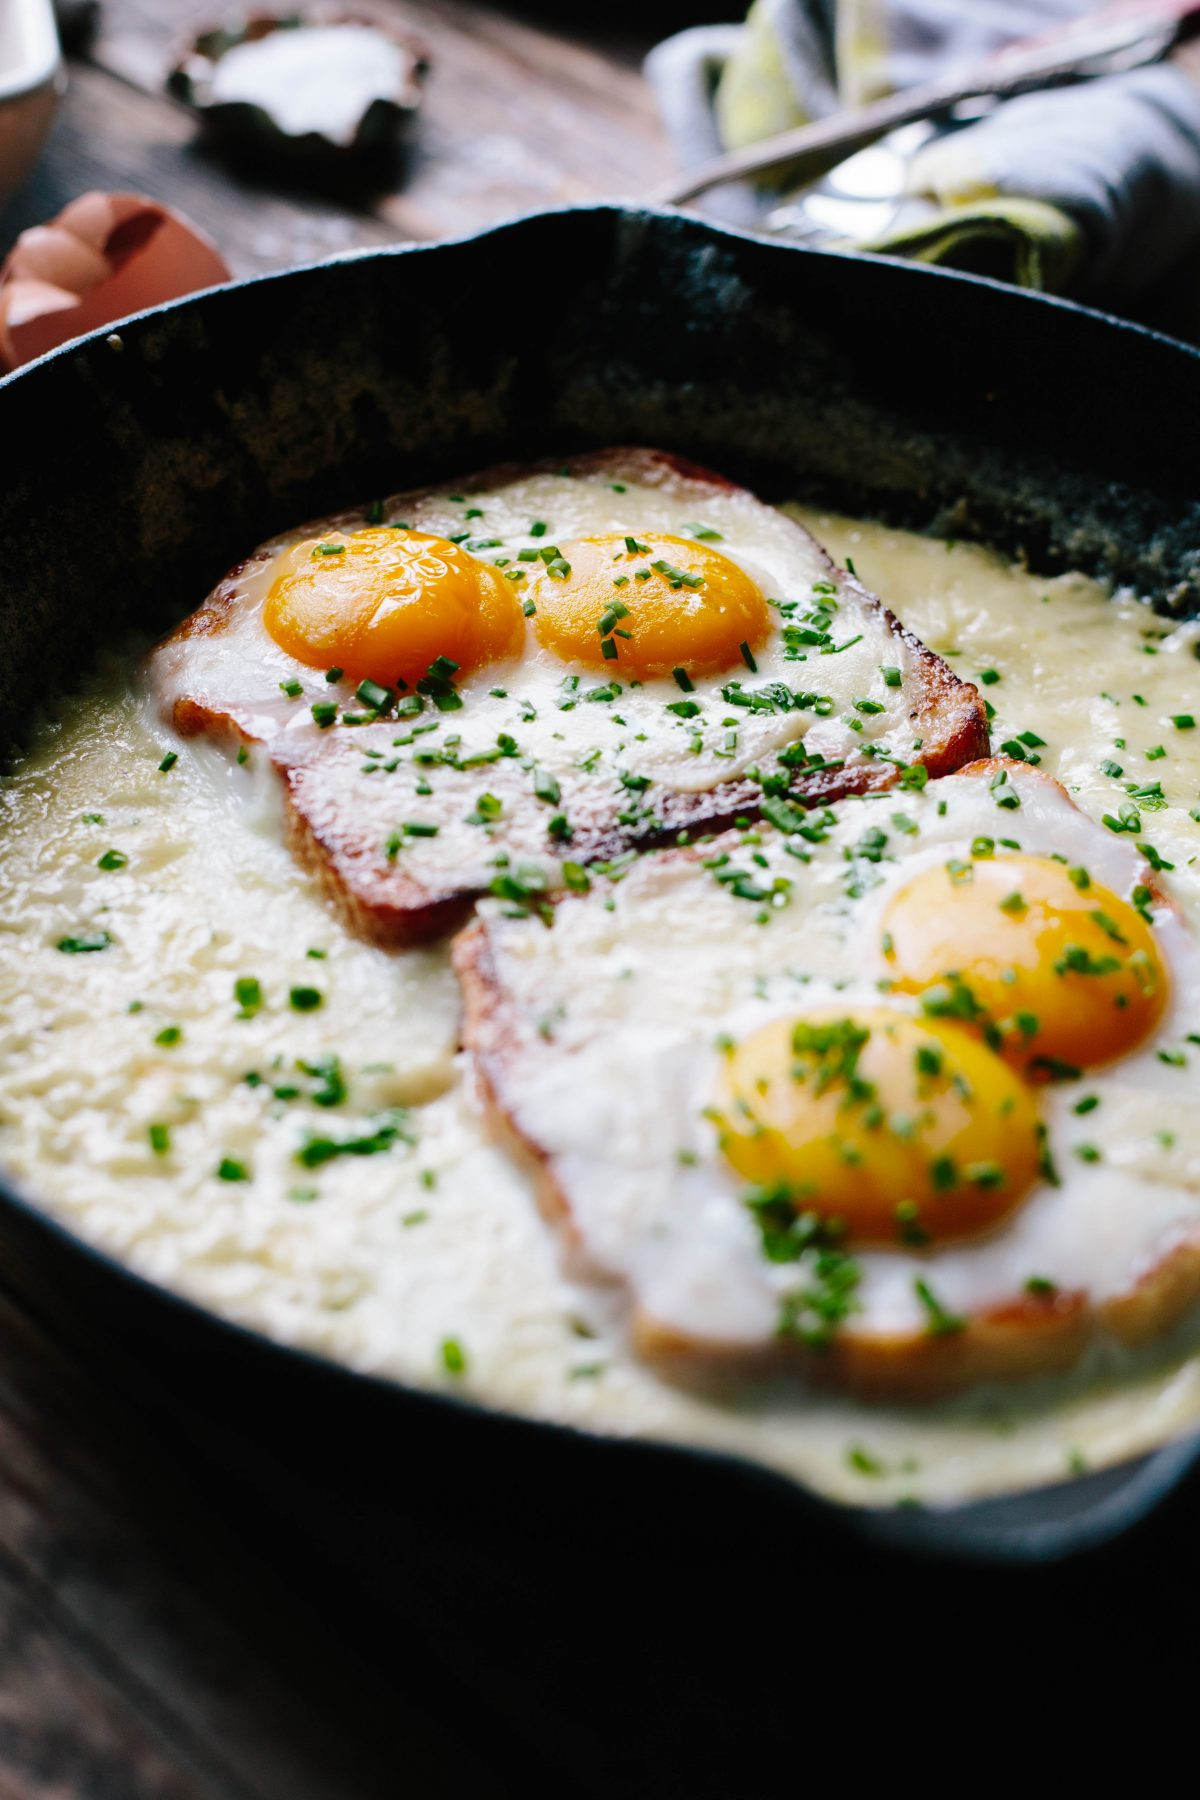 French Baked Eggs and Toast